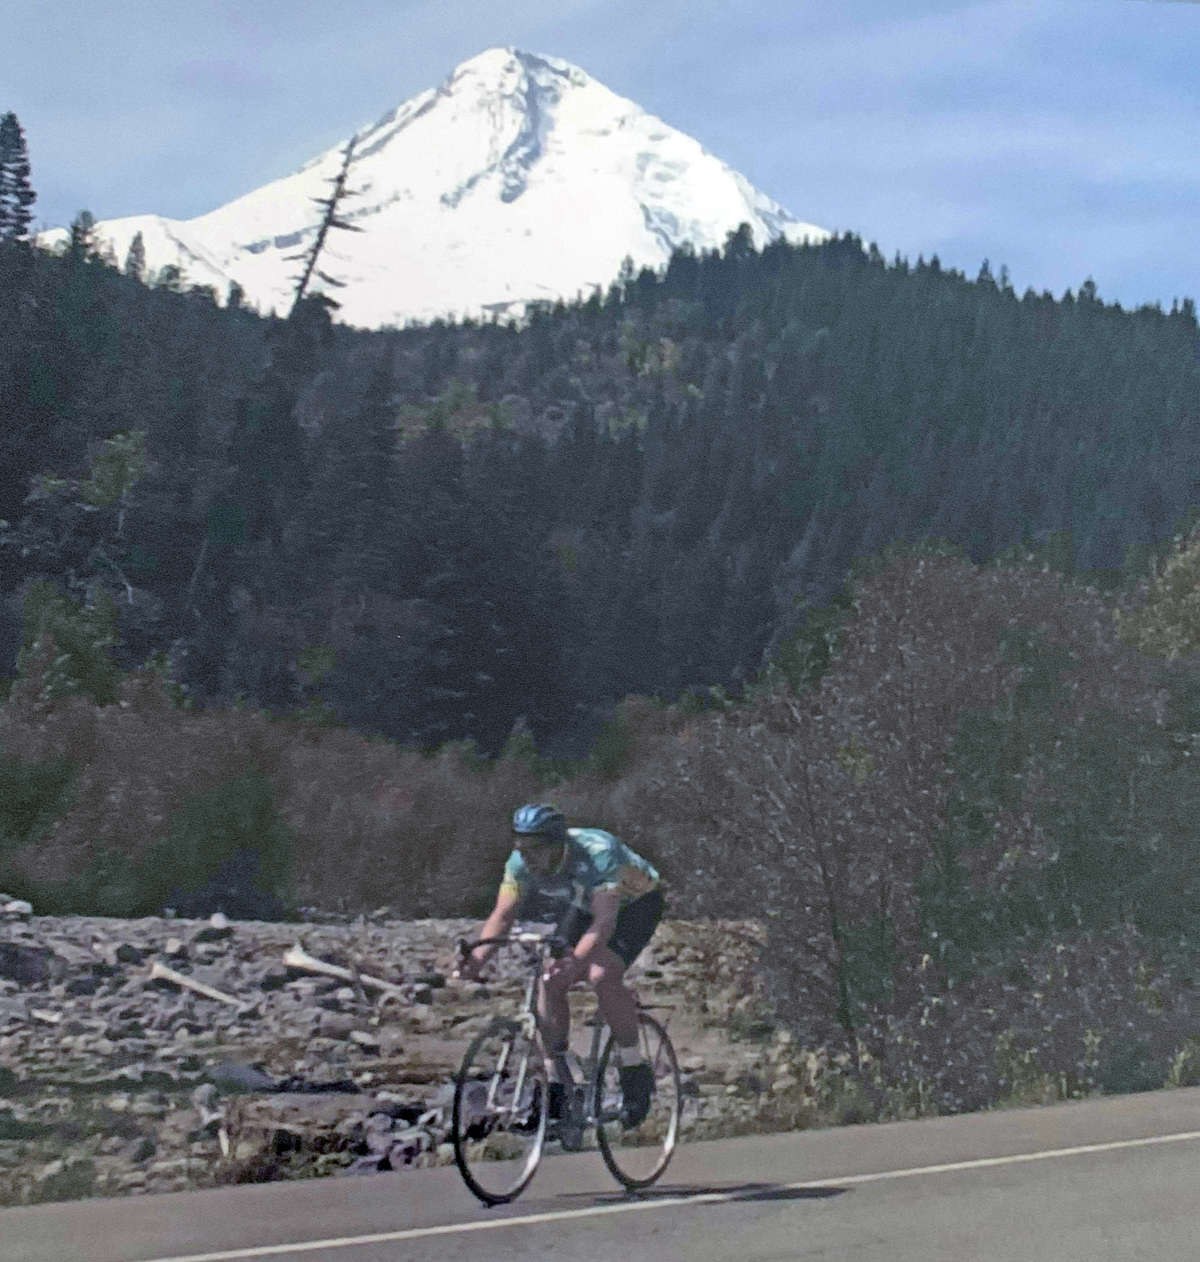 Joe Kurmaskie coming down from Barlow Pass to Hood River as part of the Summit To Surf Diabetes Association Charity Ride. Photo by Gail Davidson